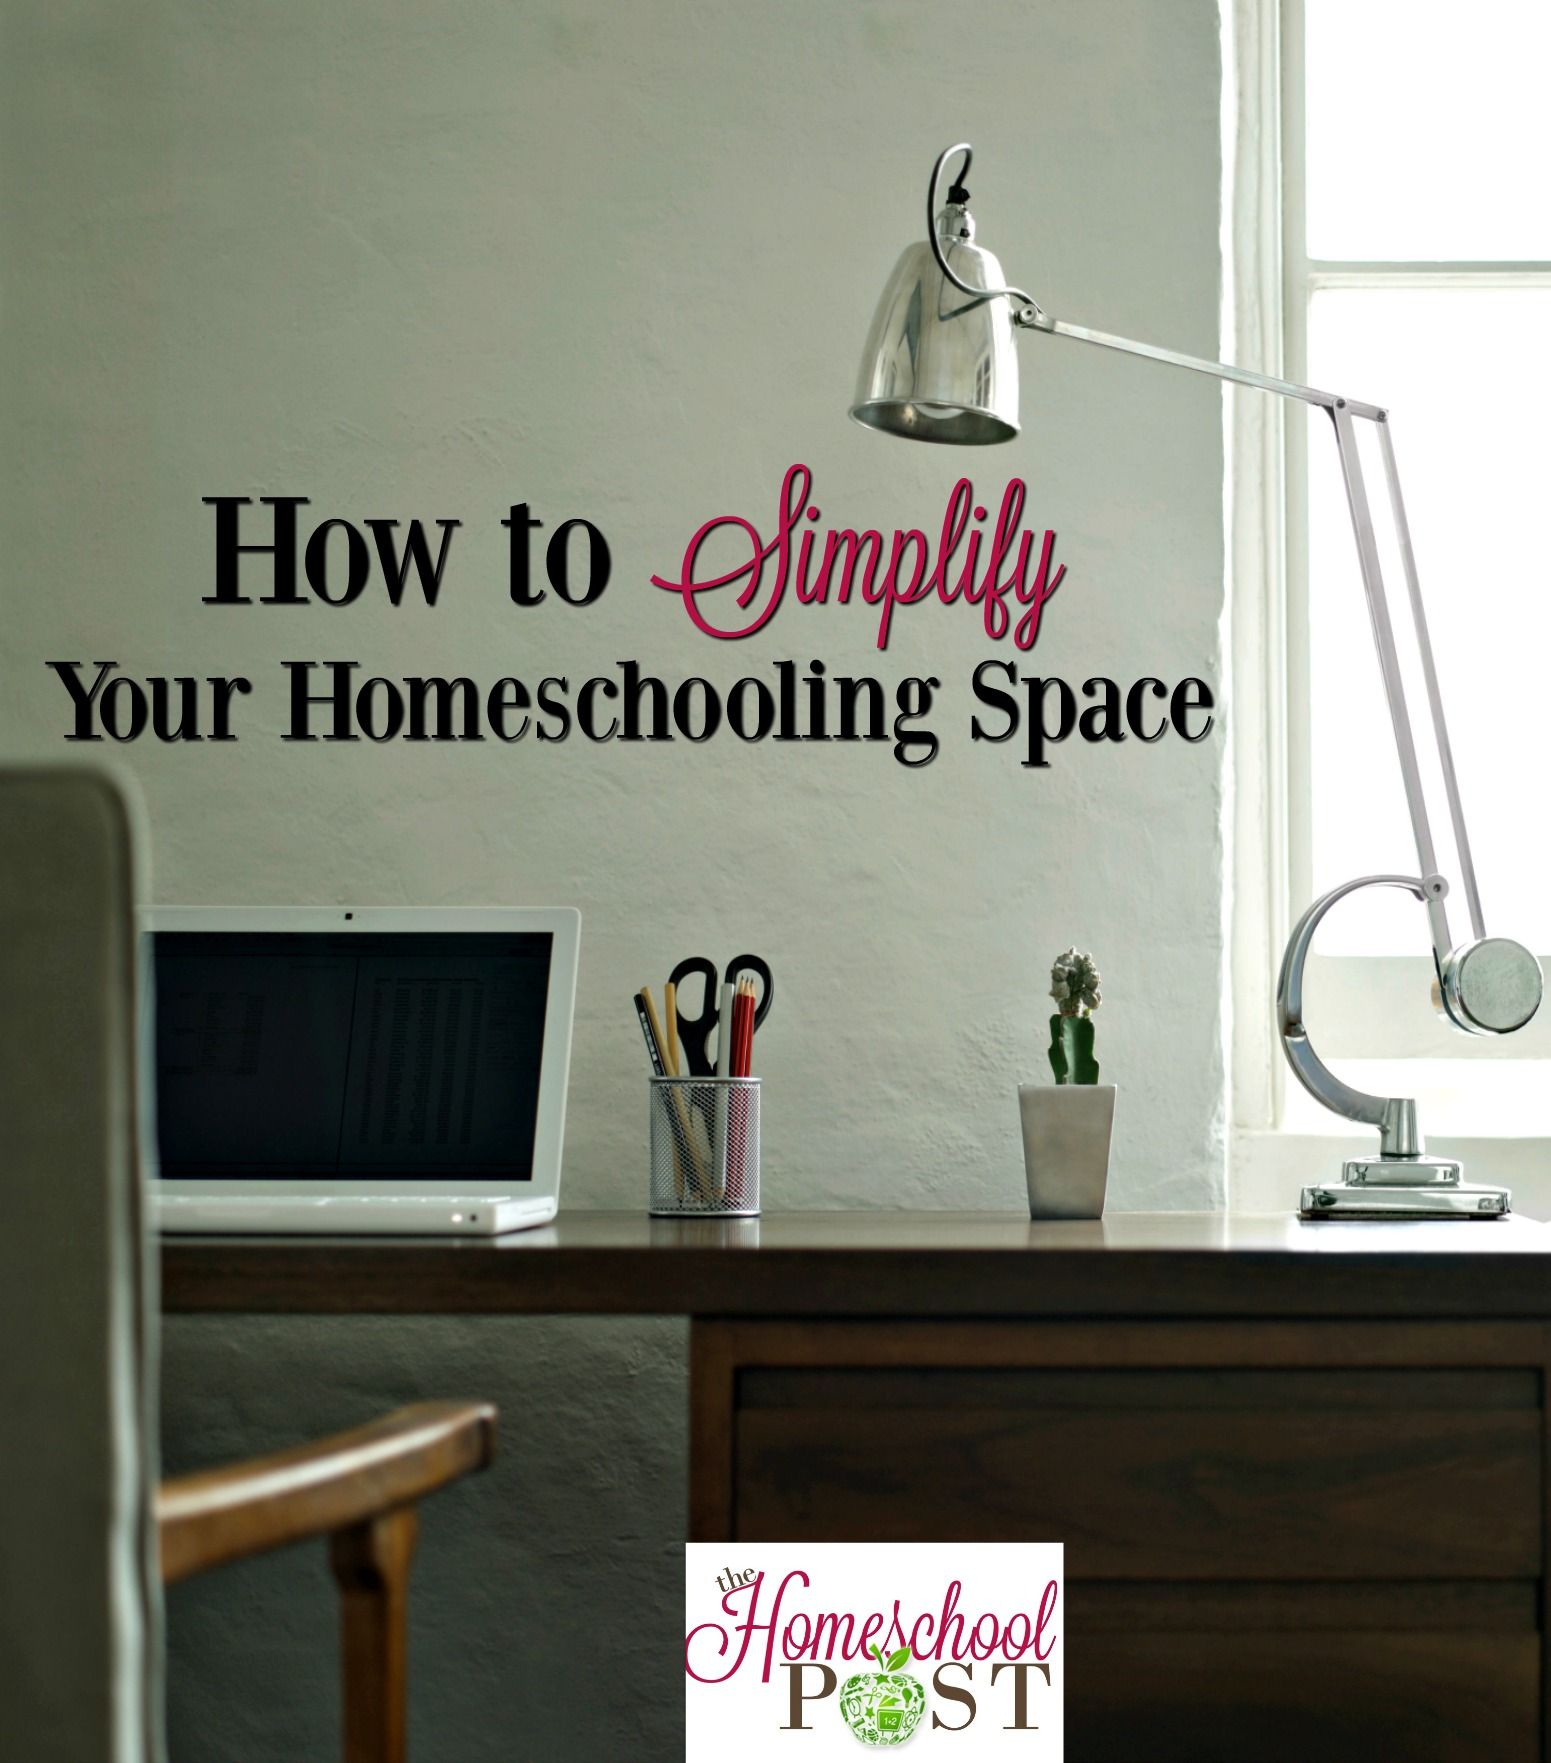 Simplifying Your Home: How To Simplify Your Homeschooling Space